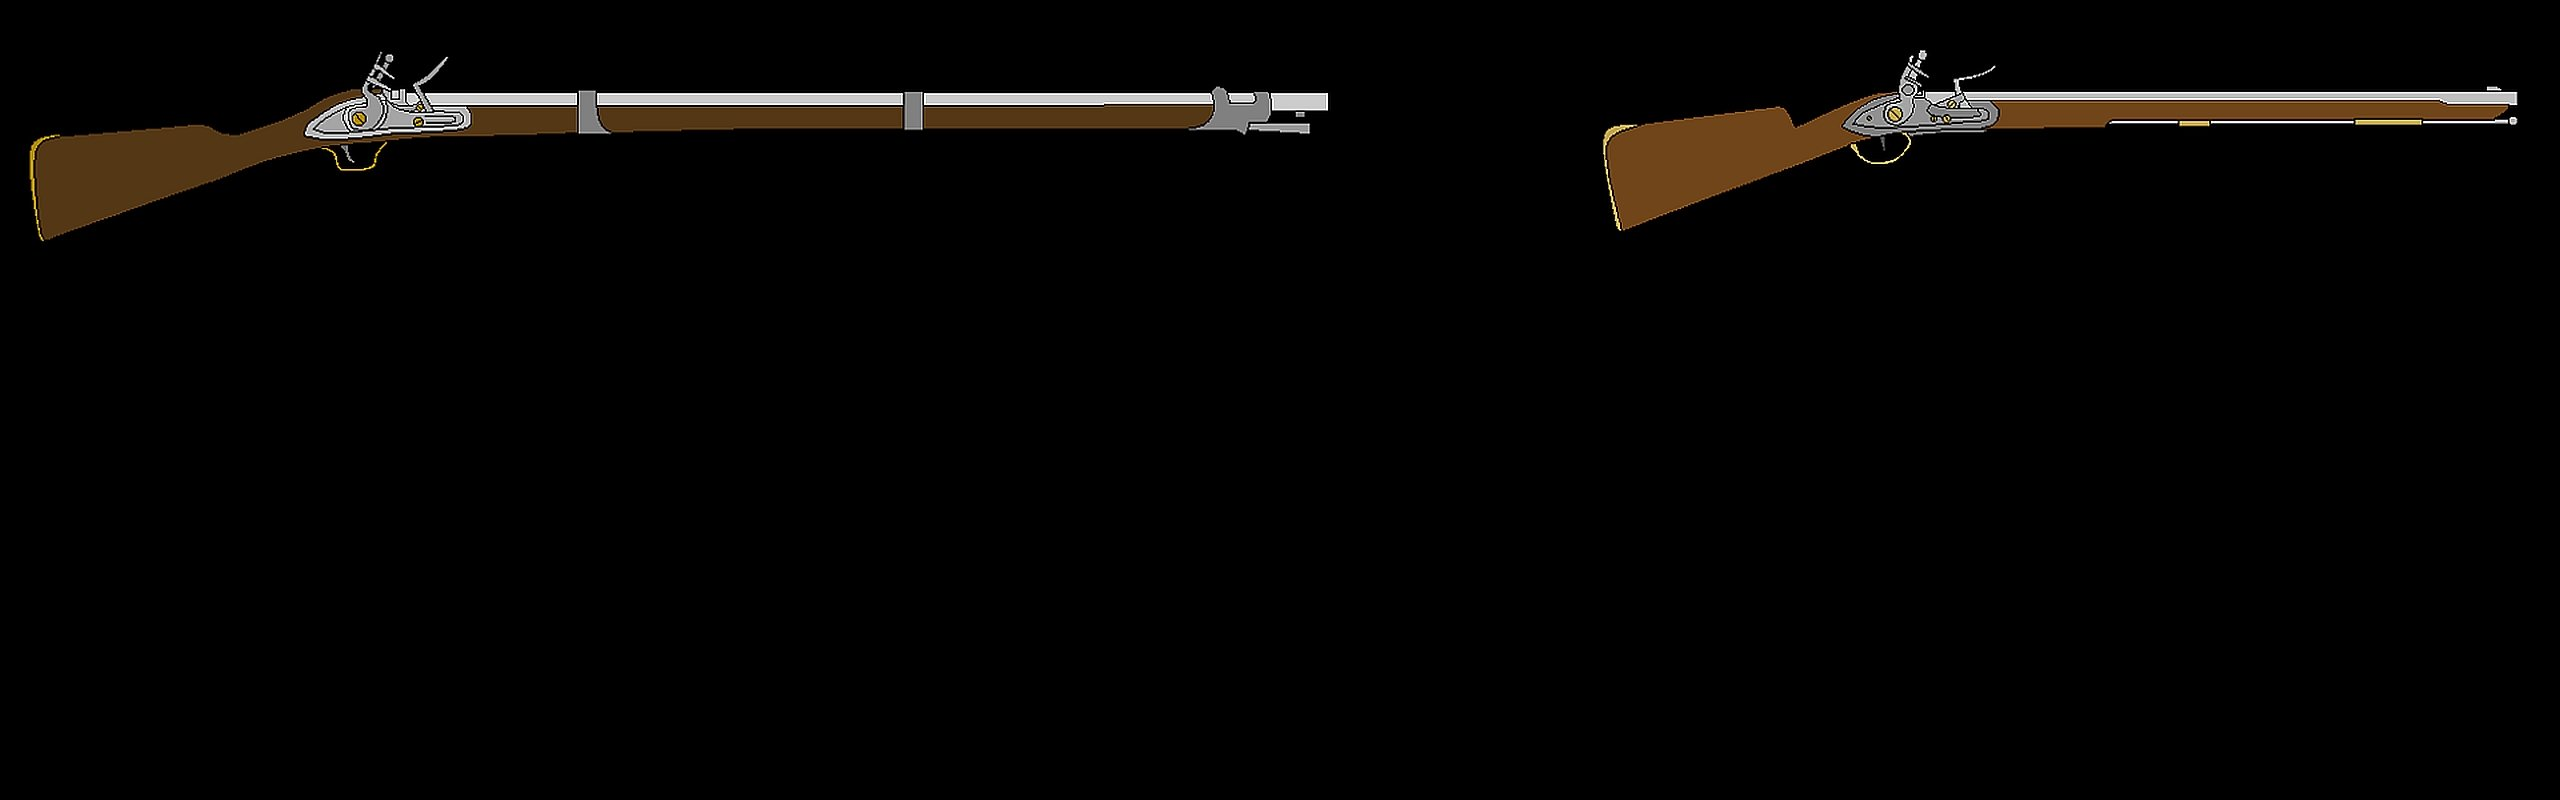 High resolution Rifle dual monitor 2560x800 wallpaper ID:33218 for PC